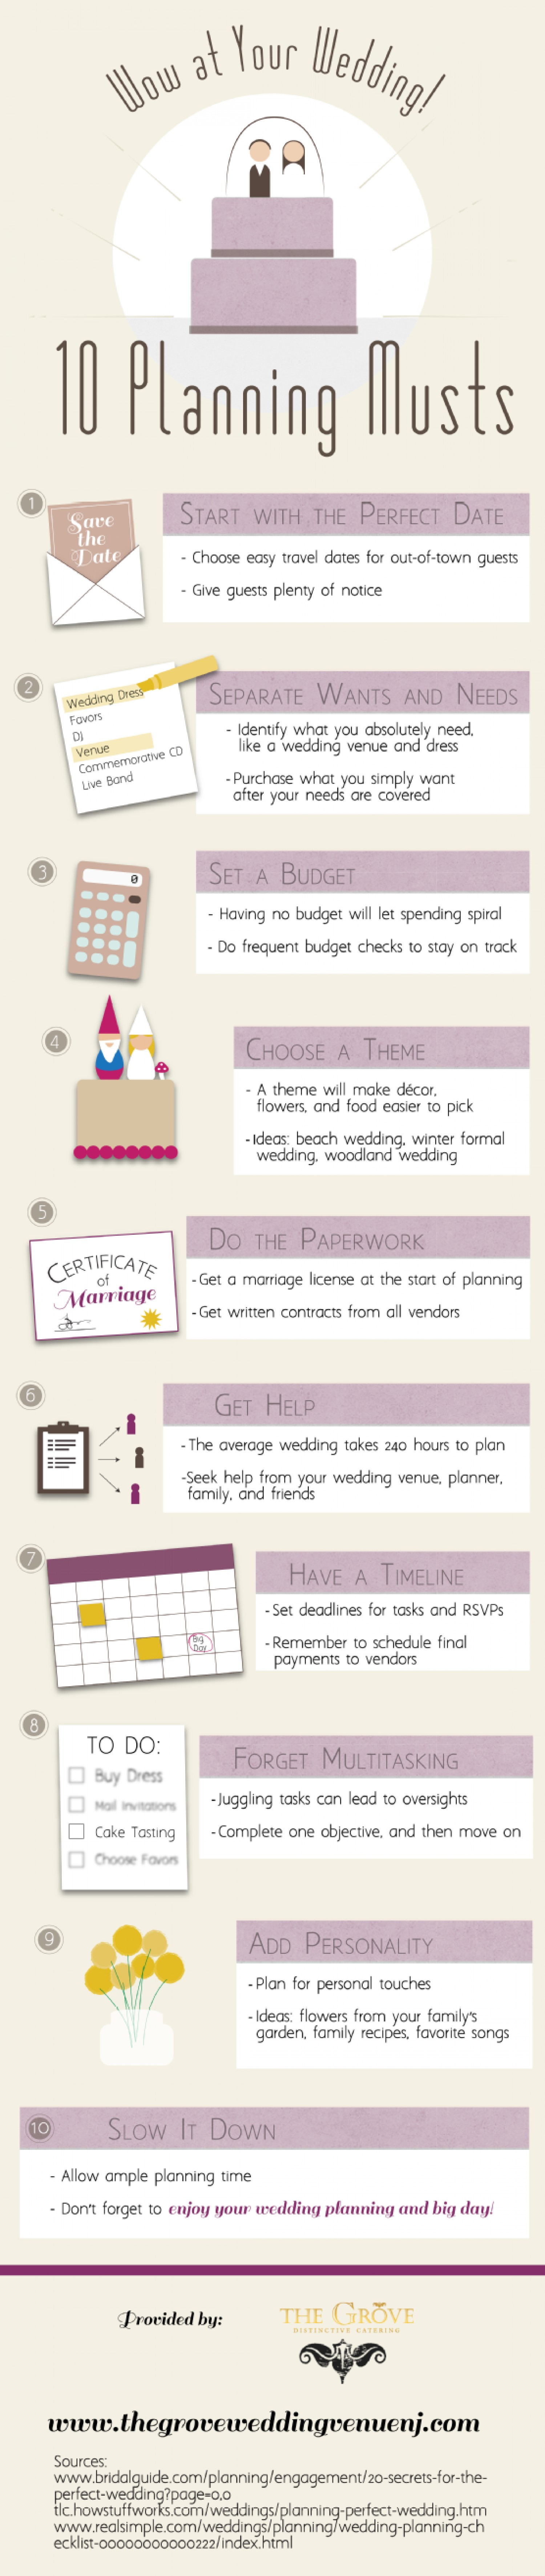 Wow At Your Wedding 10 Planning Musts